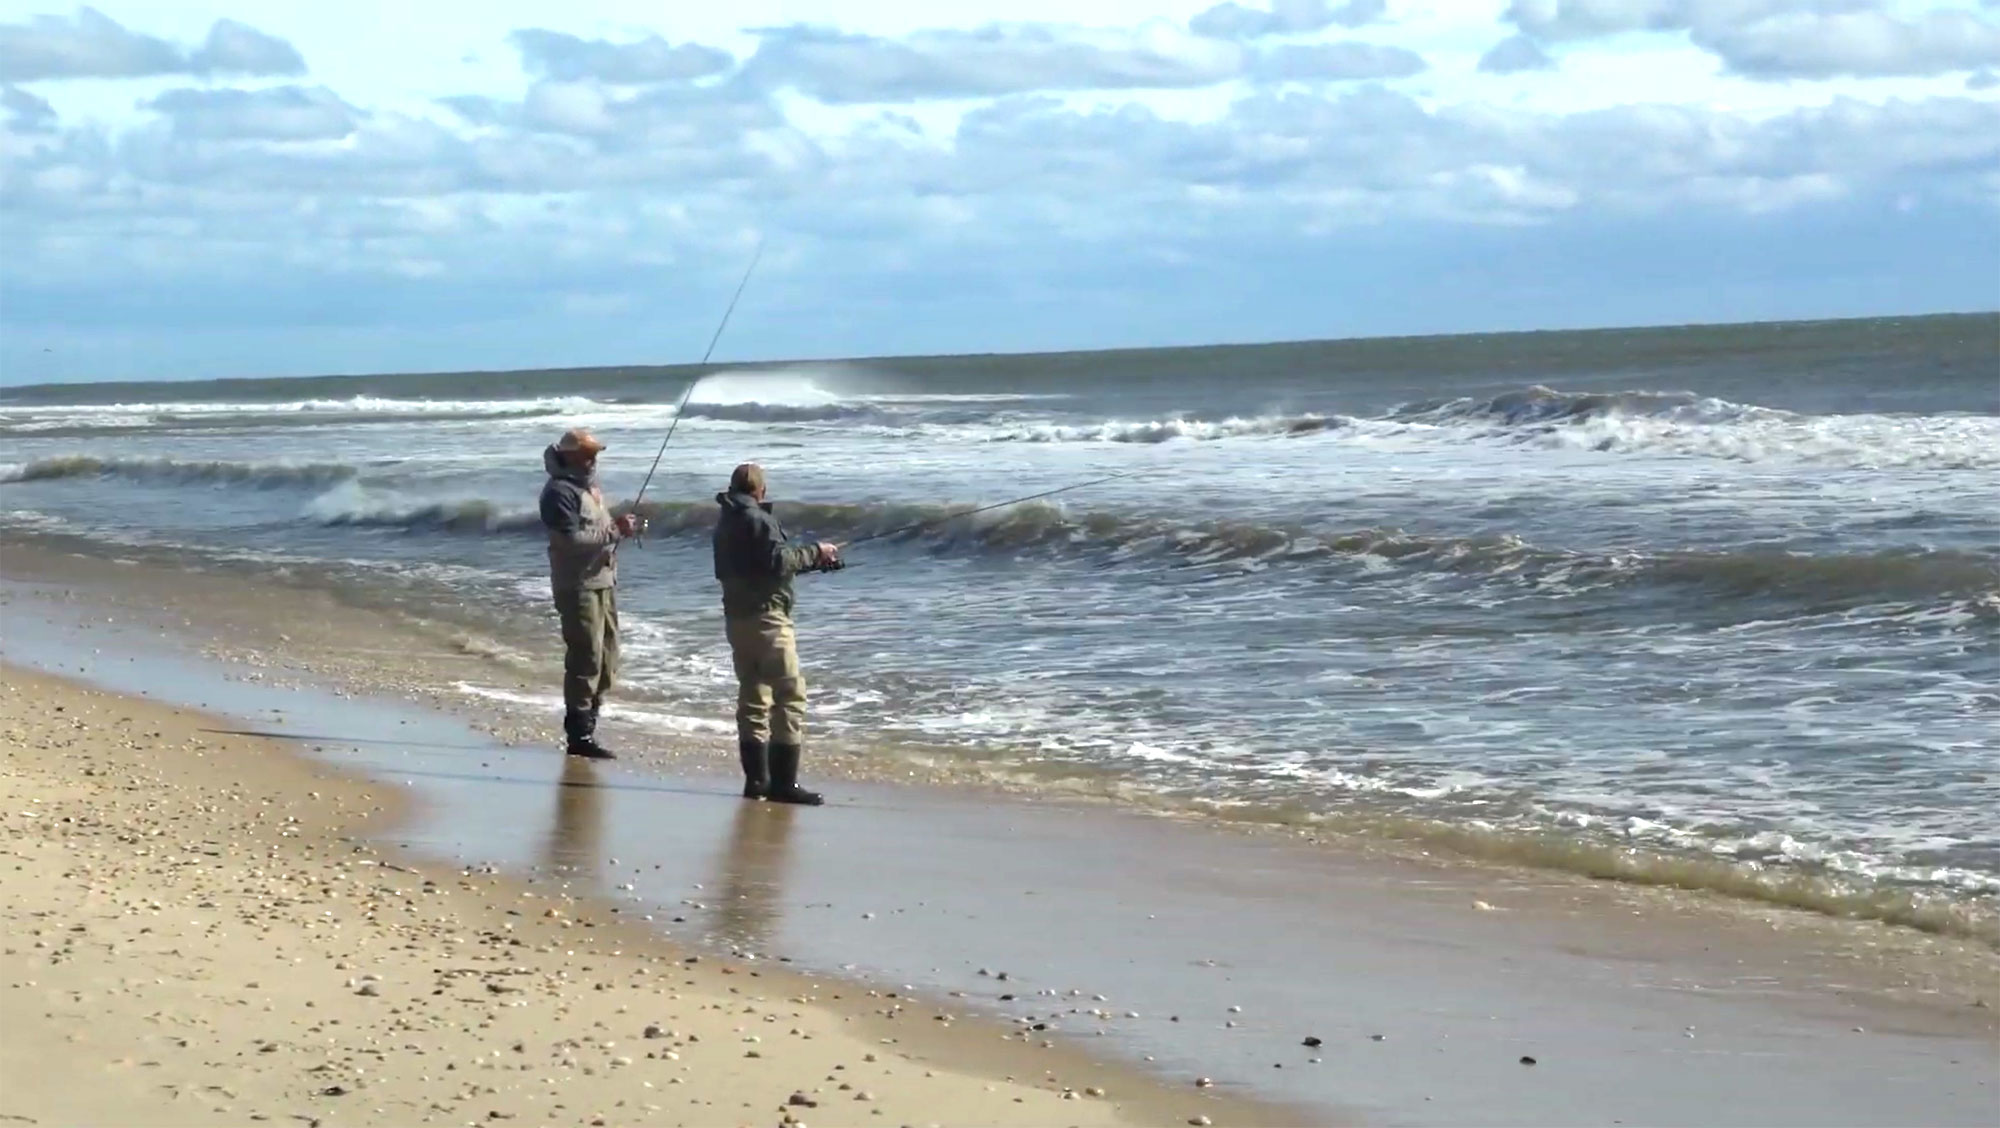 Sagg Main Striper fishing with Steve Bechard from Rise Fishining Co.